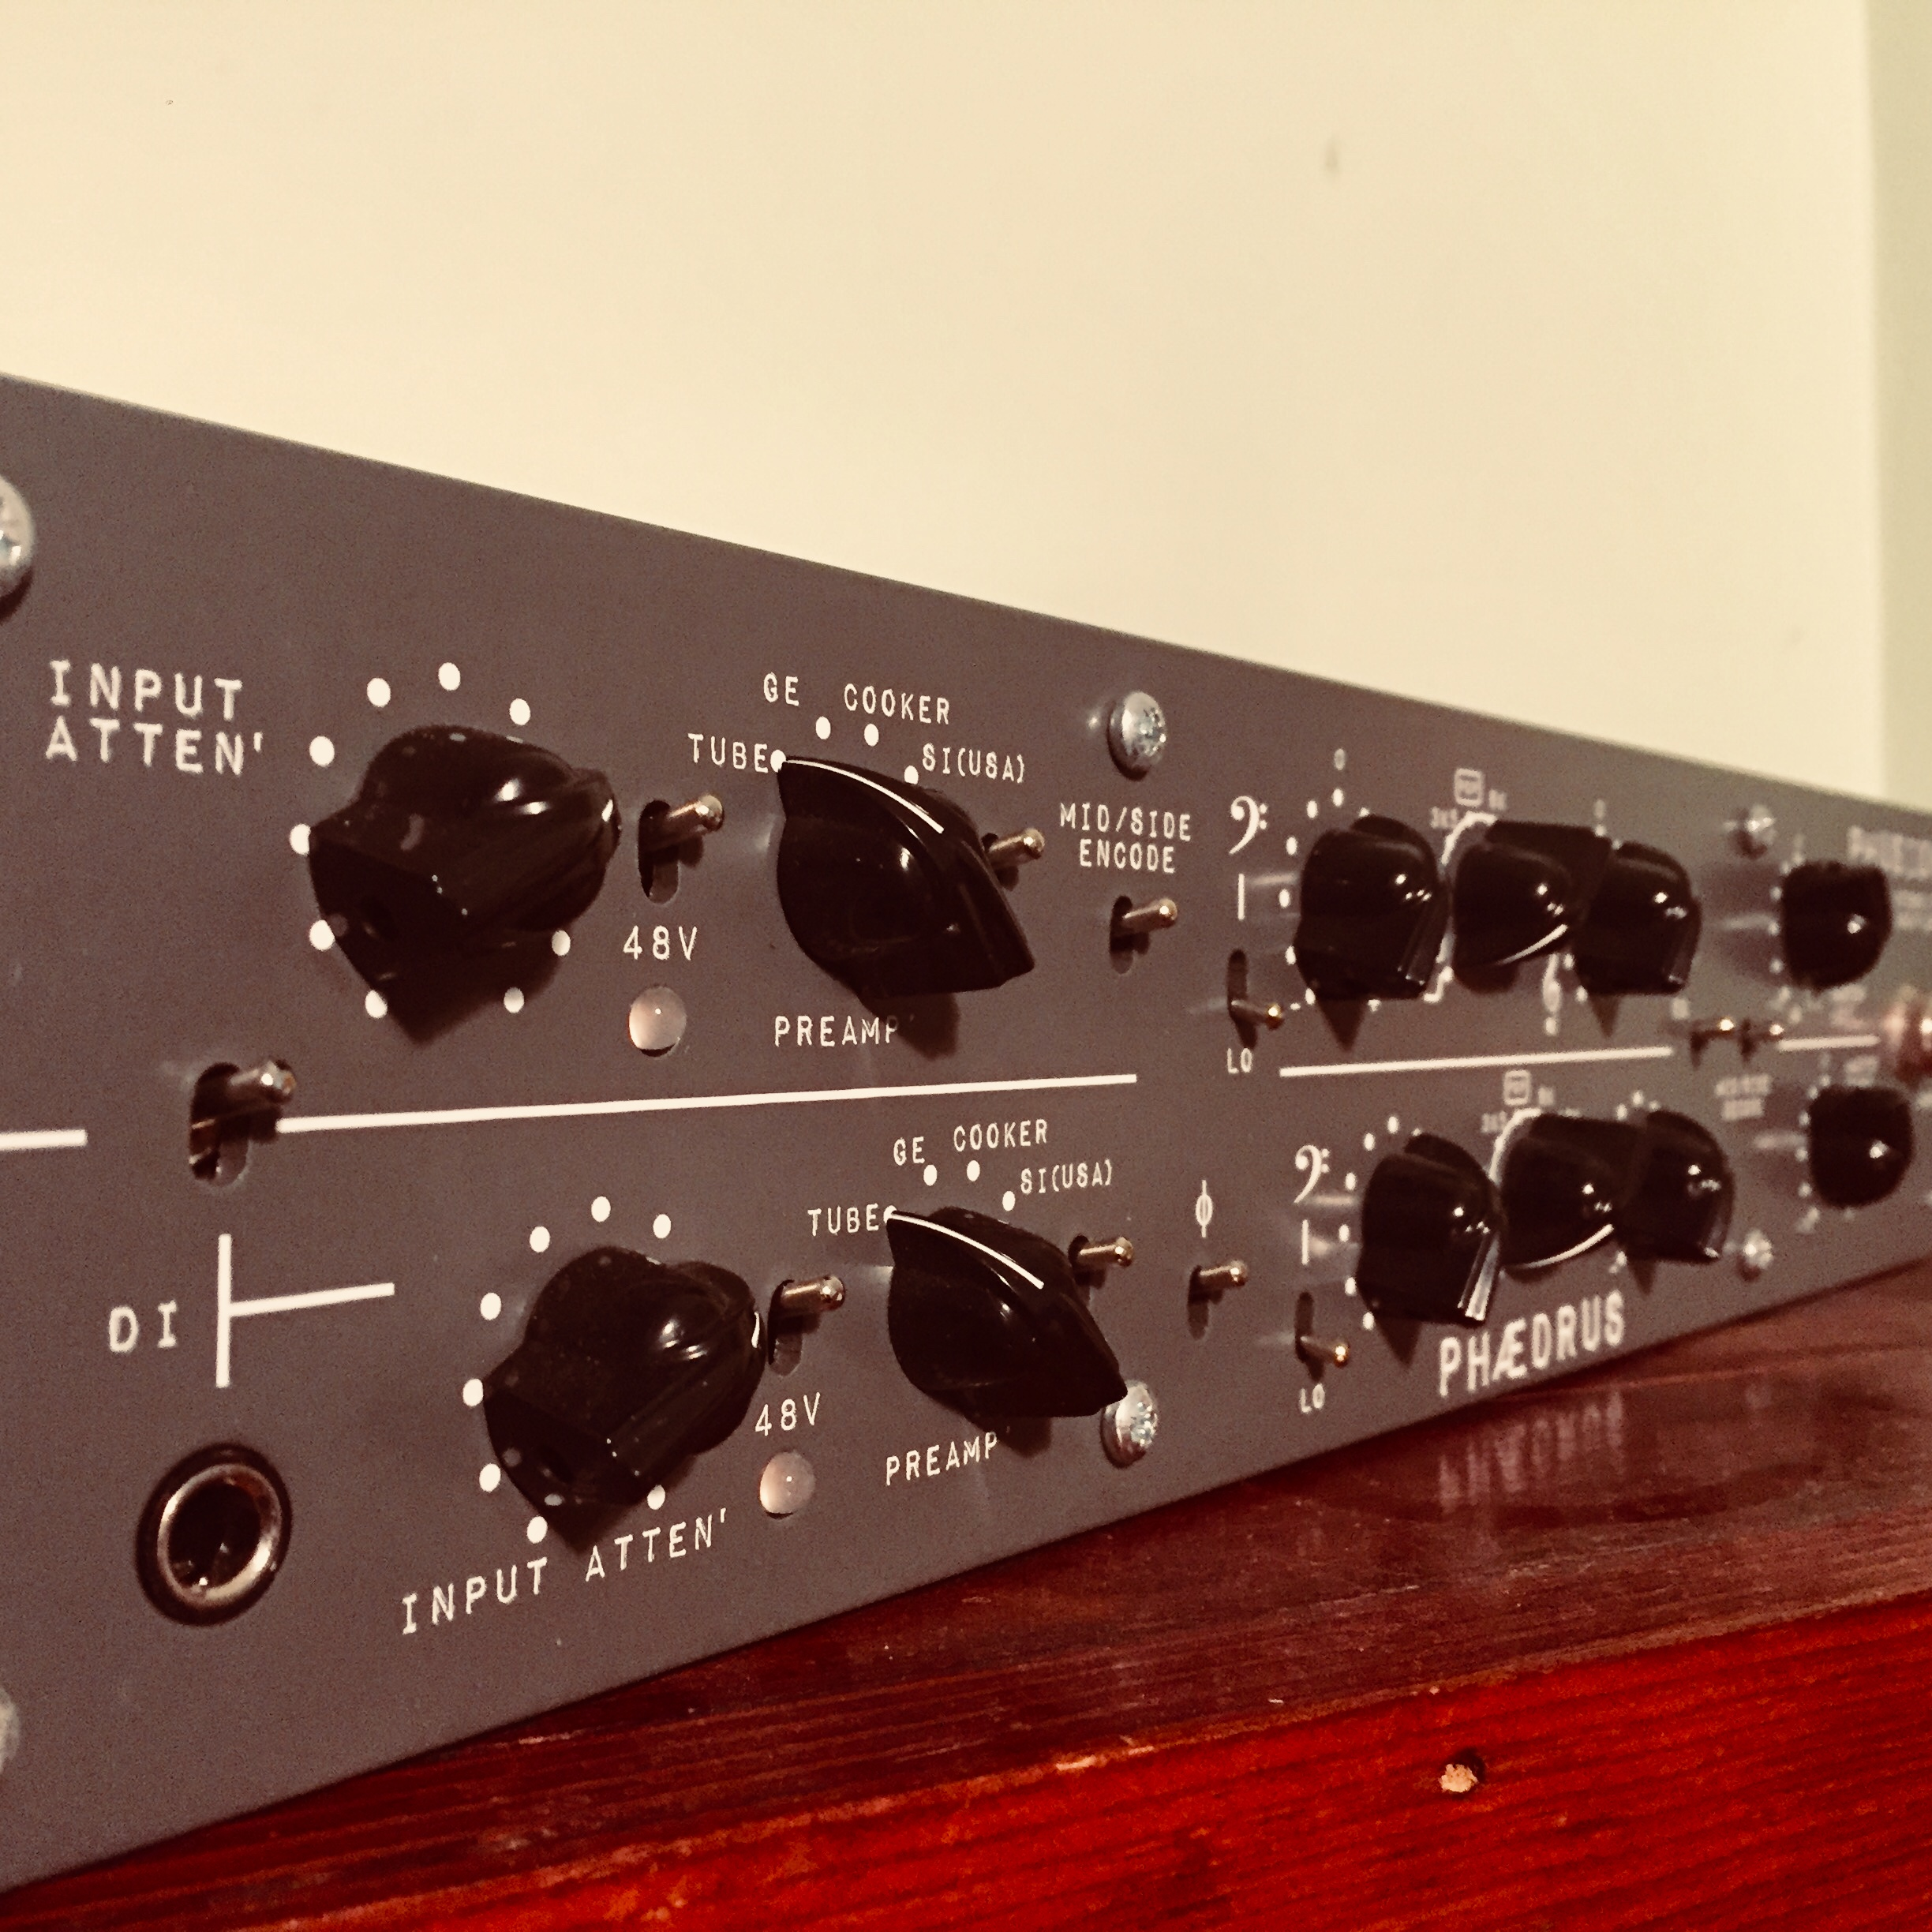 Phaedrus Phusion - Well, here is a more recent acquisition that I'm still kinda in the honeymoon period with. It's super useful, like wow. It's a 2-channel mic/line preamp with EQ but wait, what's this? Each channel has 4 different mic pre's to choose from, each from classic consoles / hardware from the past. The